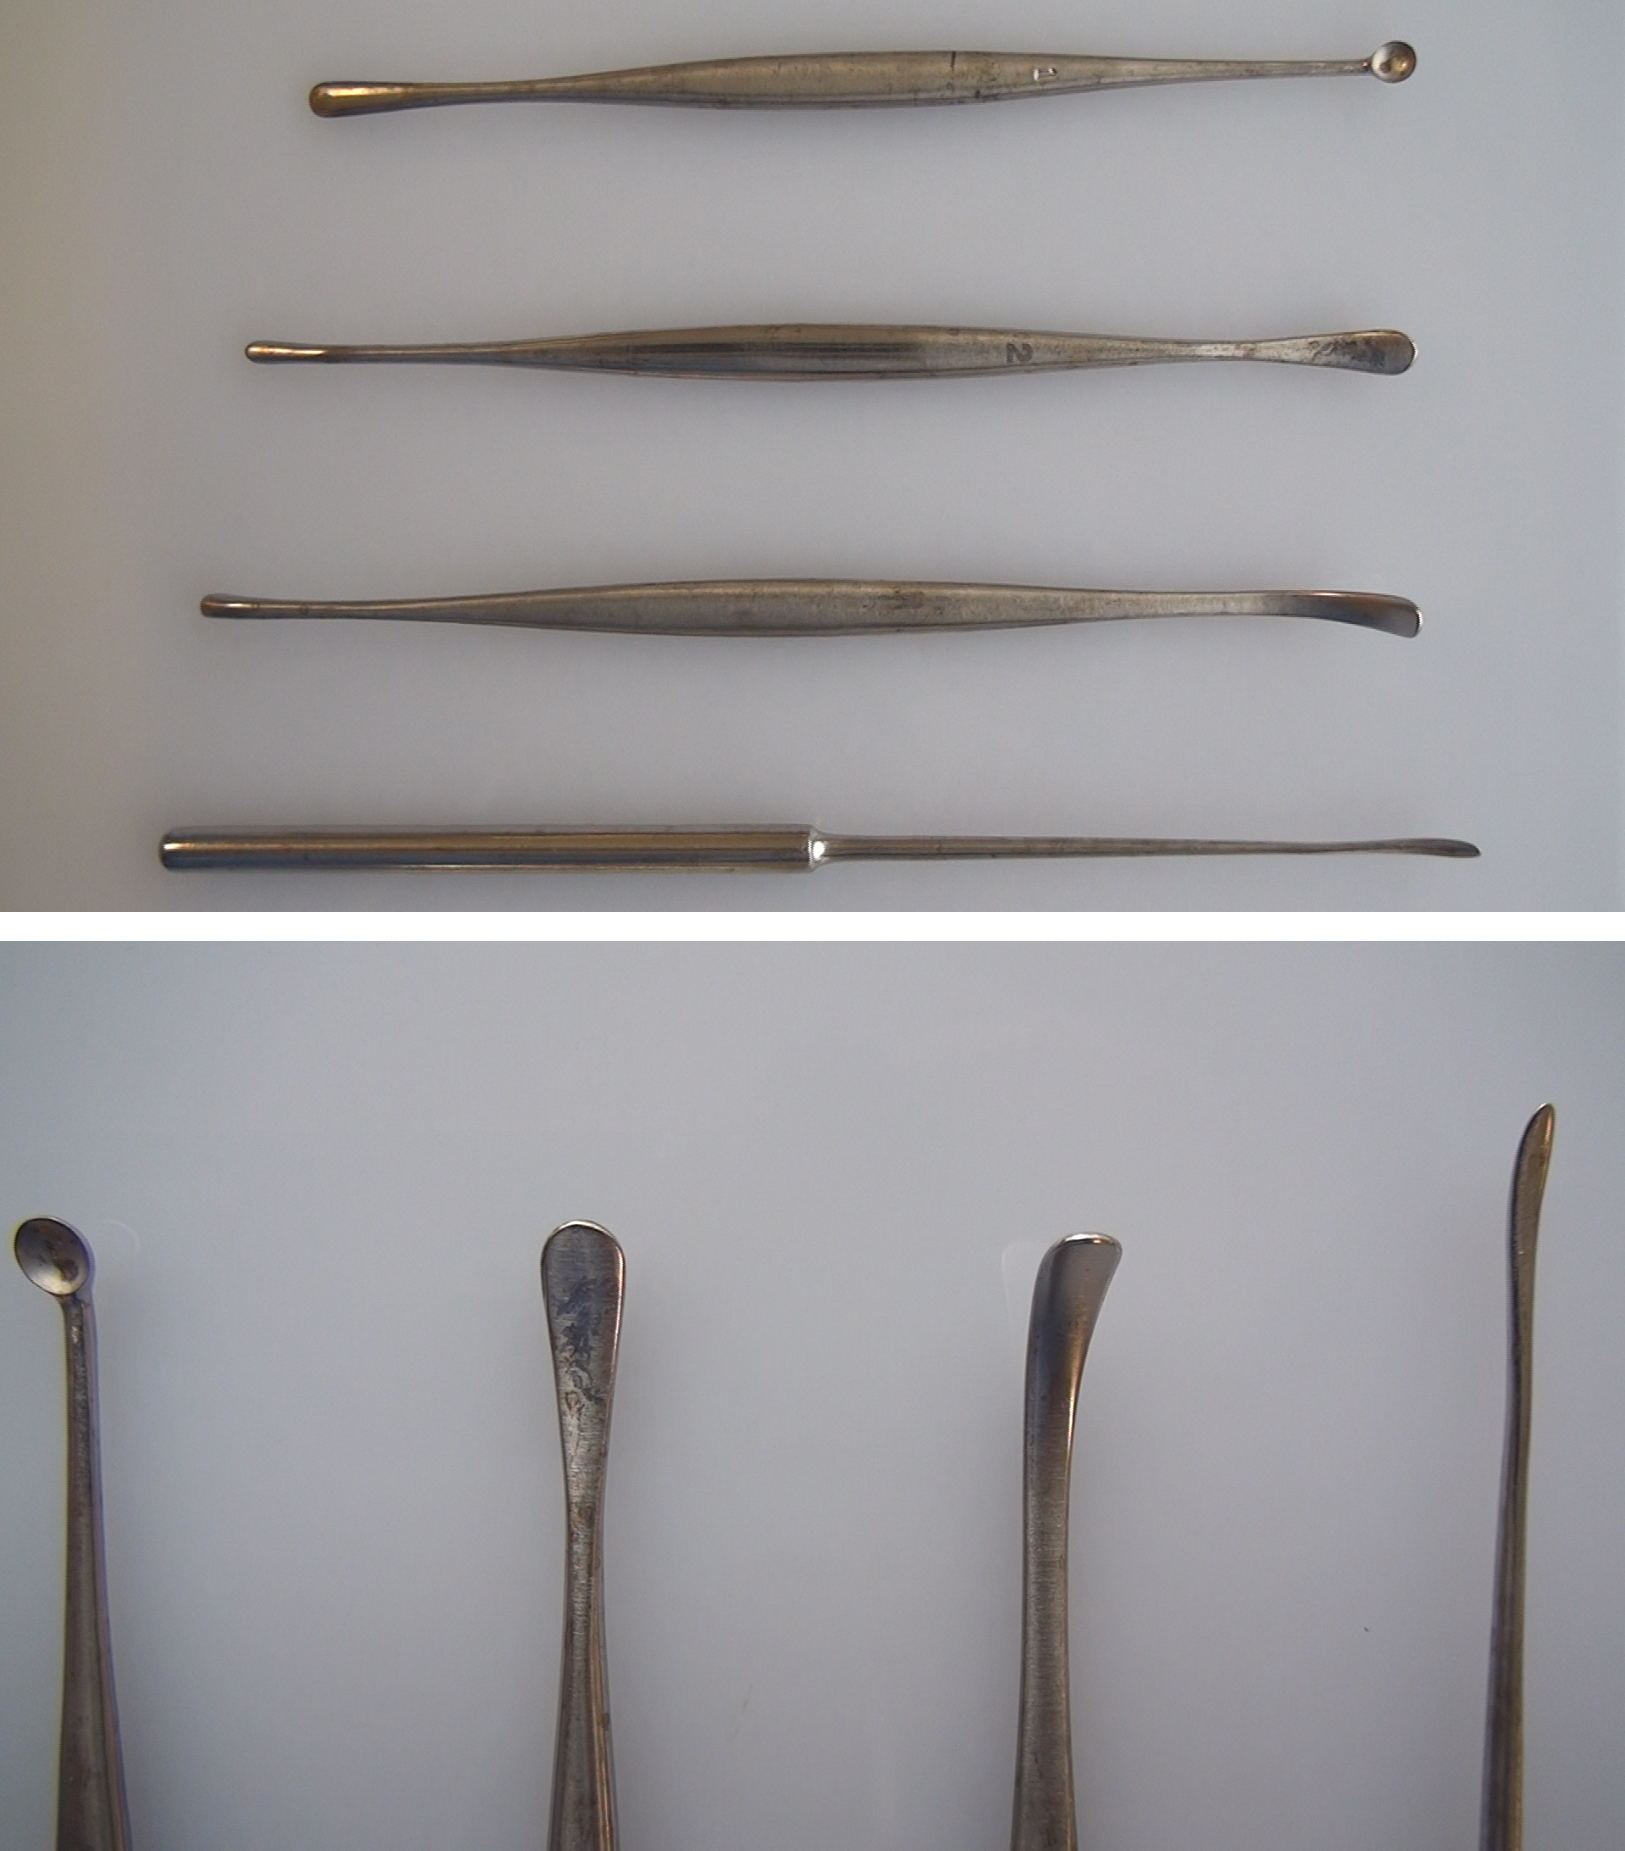 Figure 7: Once the burr holes are created, the inner table bone fragments can be removed with a bone curette, or a #1 Penfield dissector. The dura is typically thoroughly stripped from the overlying inner table using a #3 Penfield. The Penfield instruments are among the most useful instruments for cranial opening and #1 and #3 dissectors are commonly used. The Penfield dissectors are demonstrated in these images; their numbers correspond to their order from top to bottom (upper image and left to right (lower image).